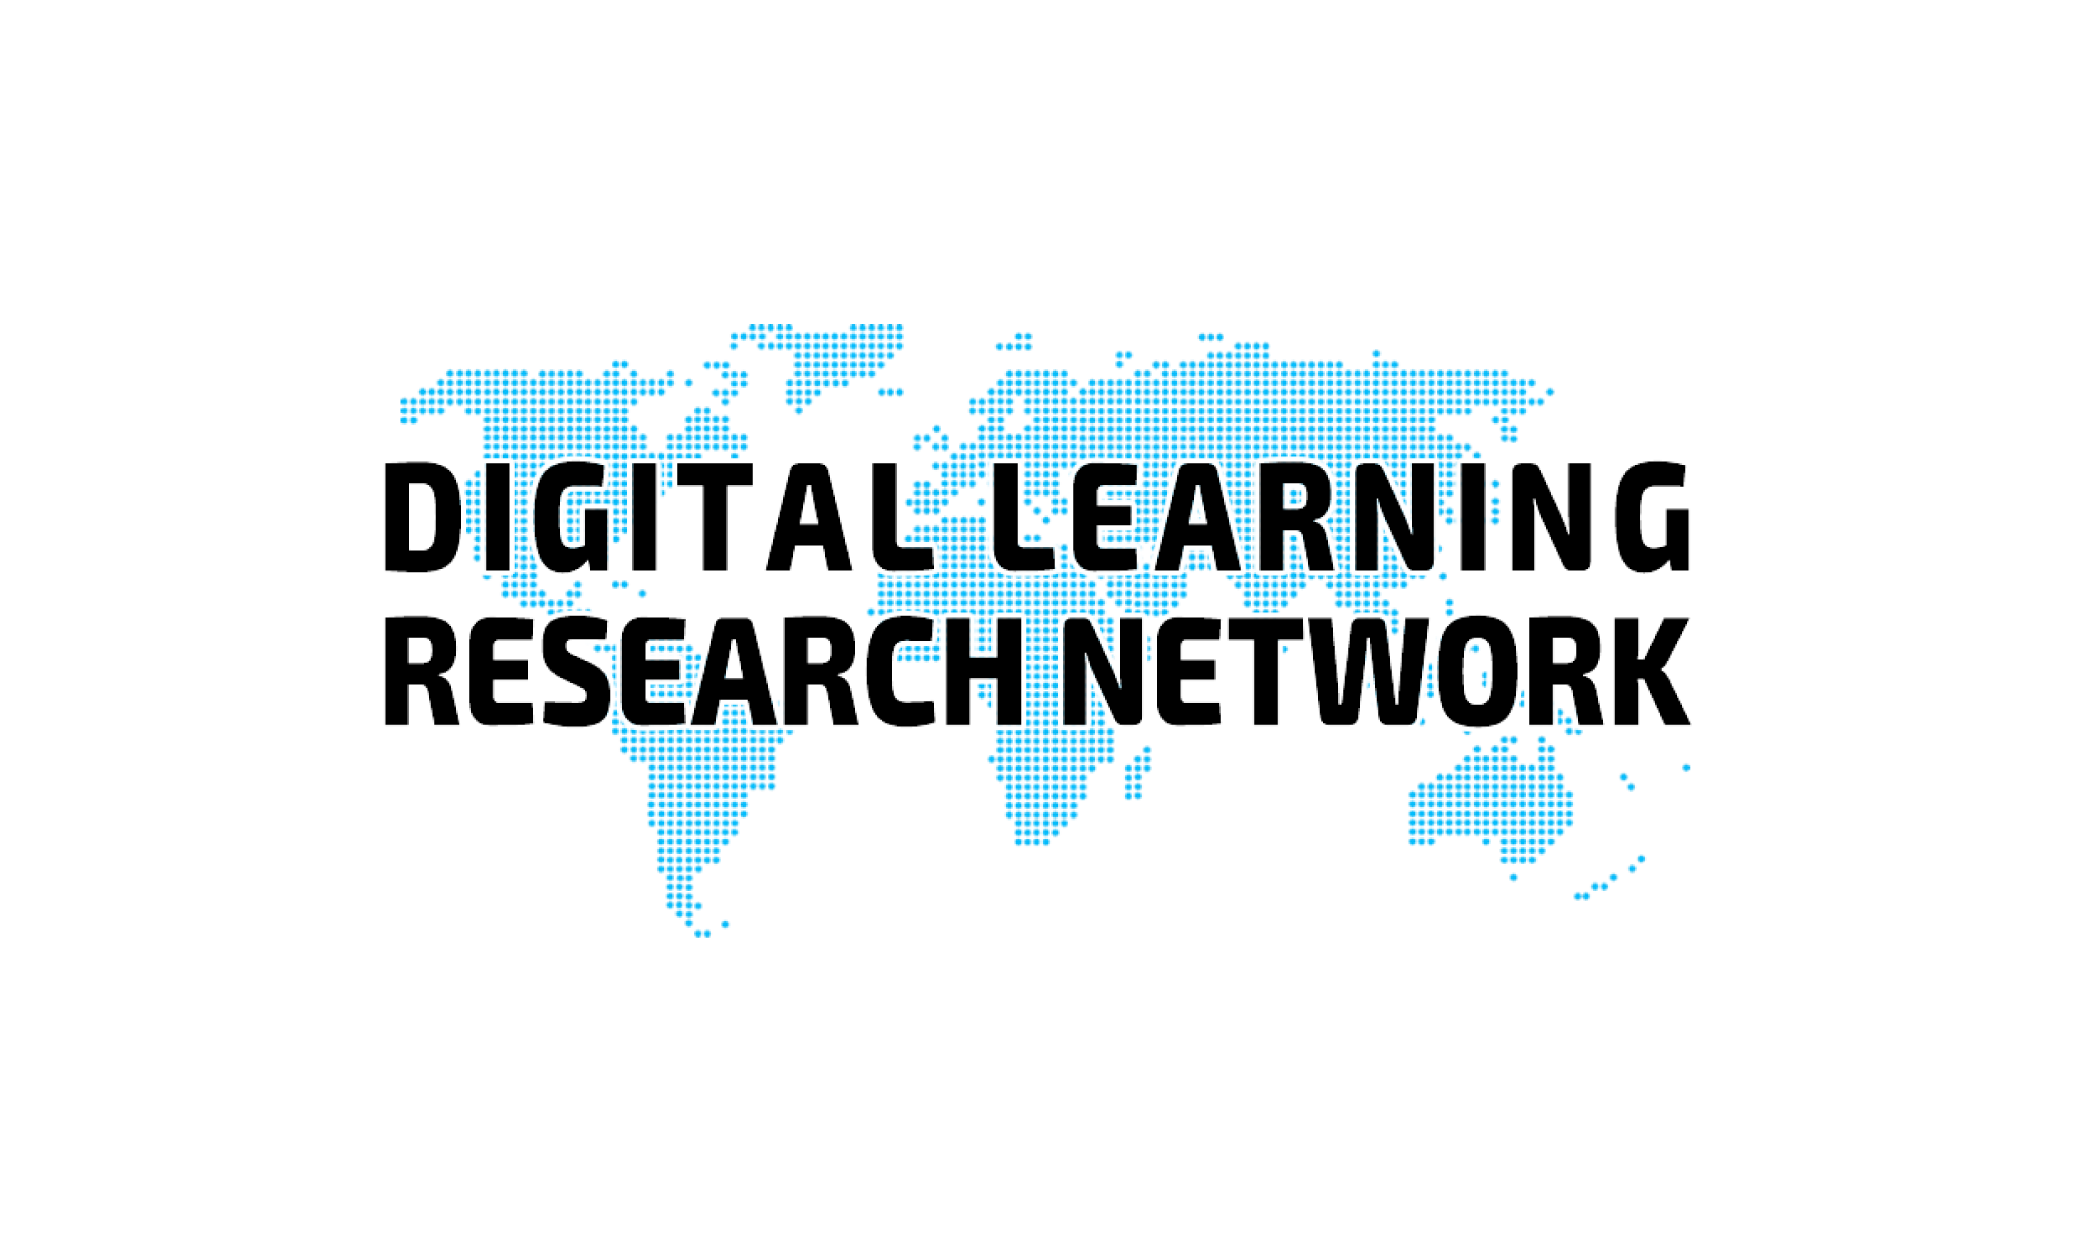 Digital Learning Research Network